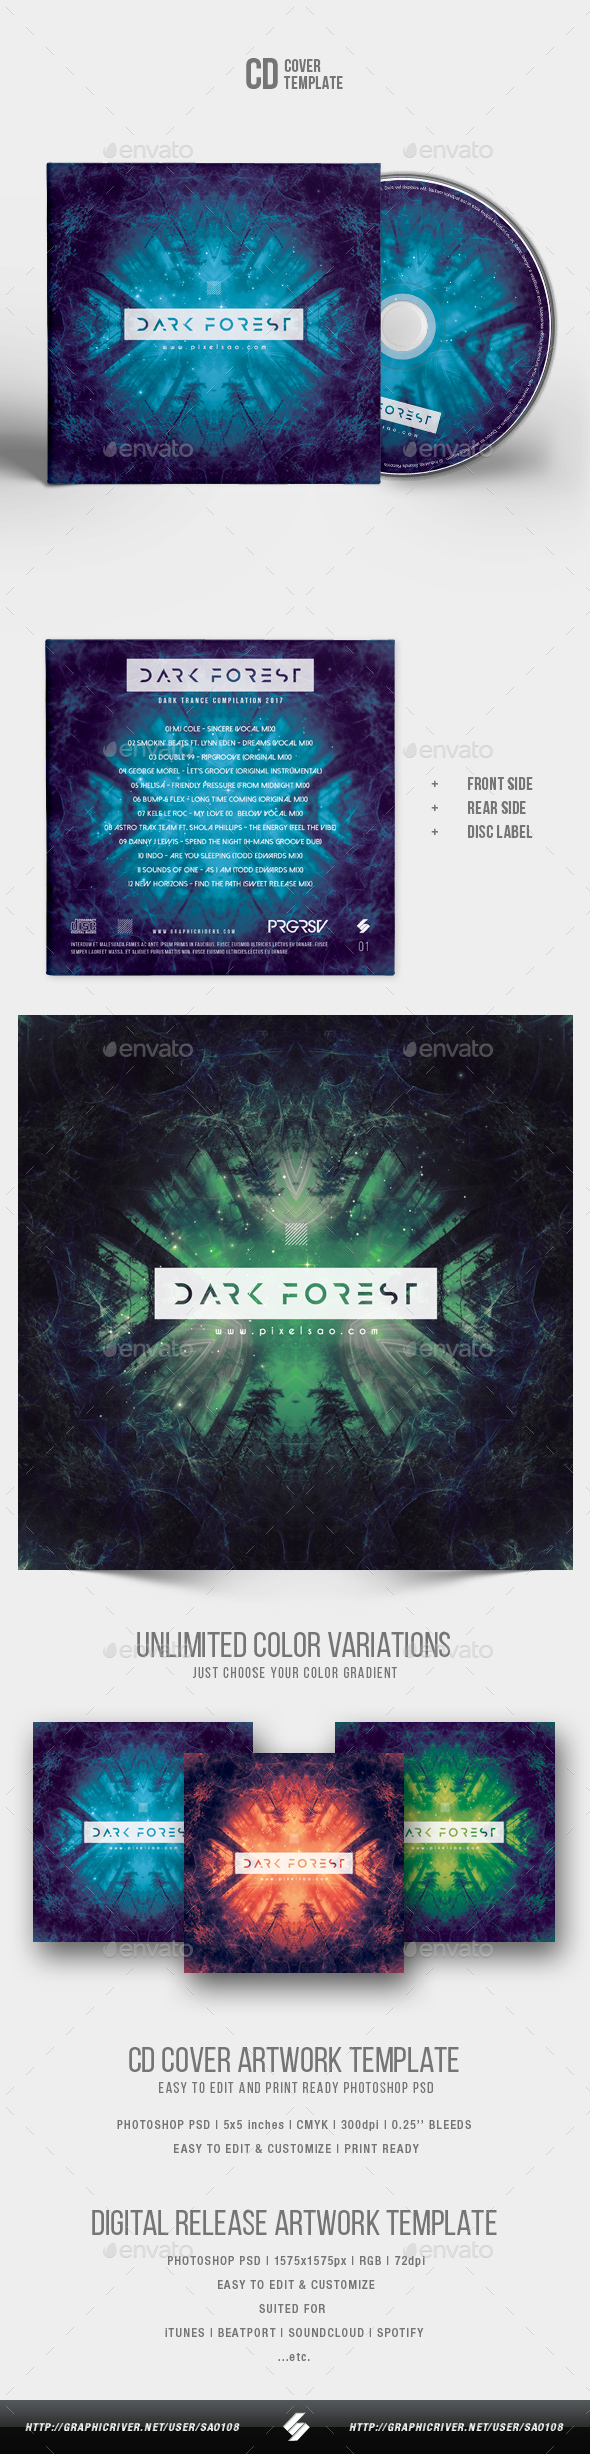 Dark Forest - CD Cover Artwork Template - CD & DVD Artwork Print Templates